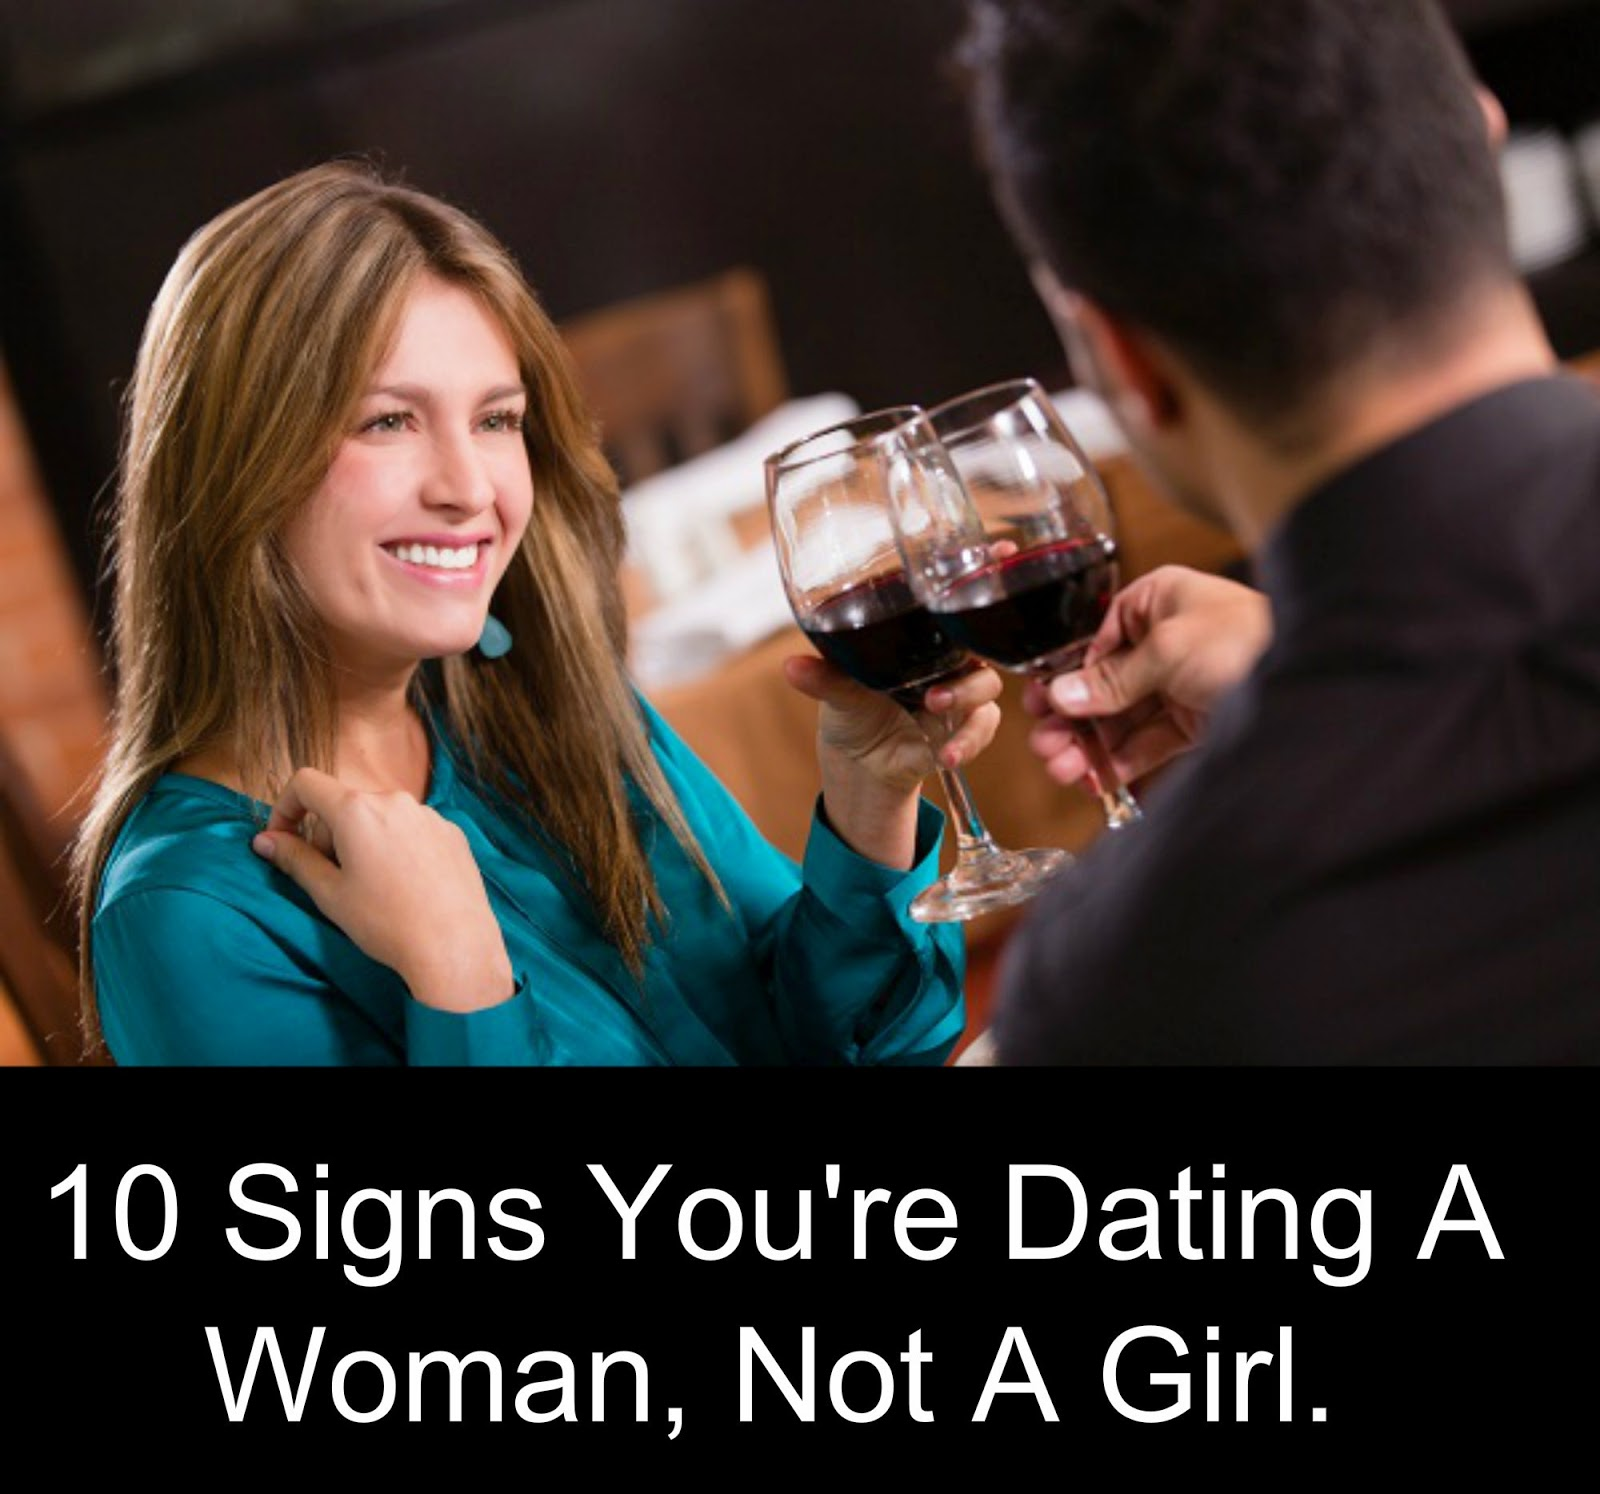 How to tell if a girl is dating material